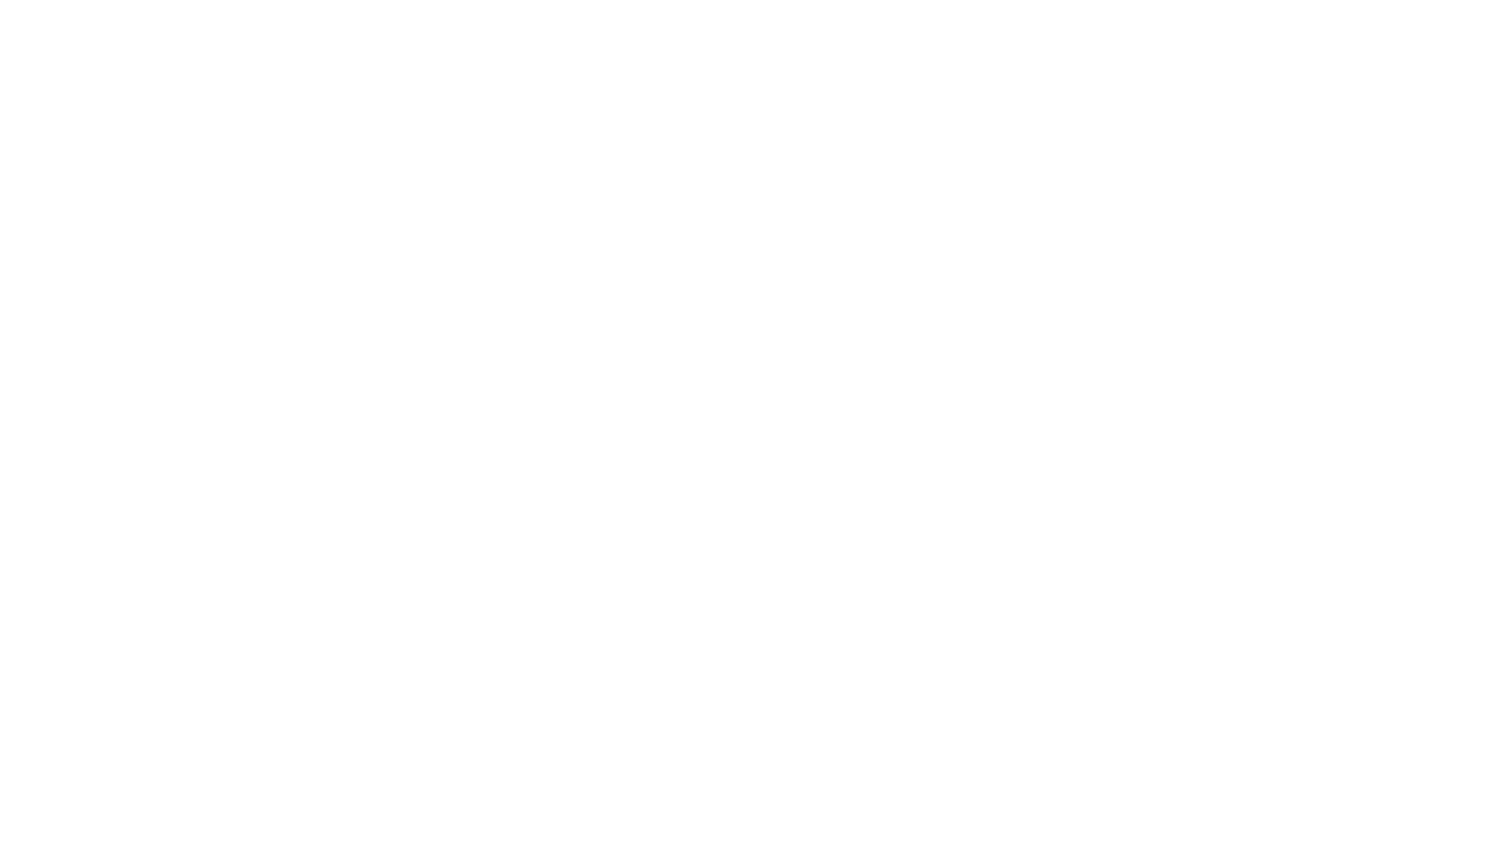 Swizzle Collective